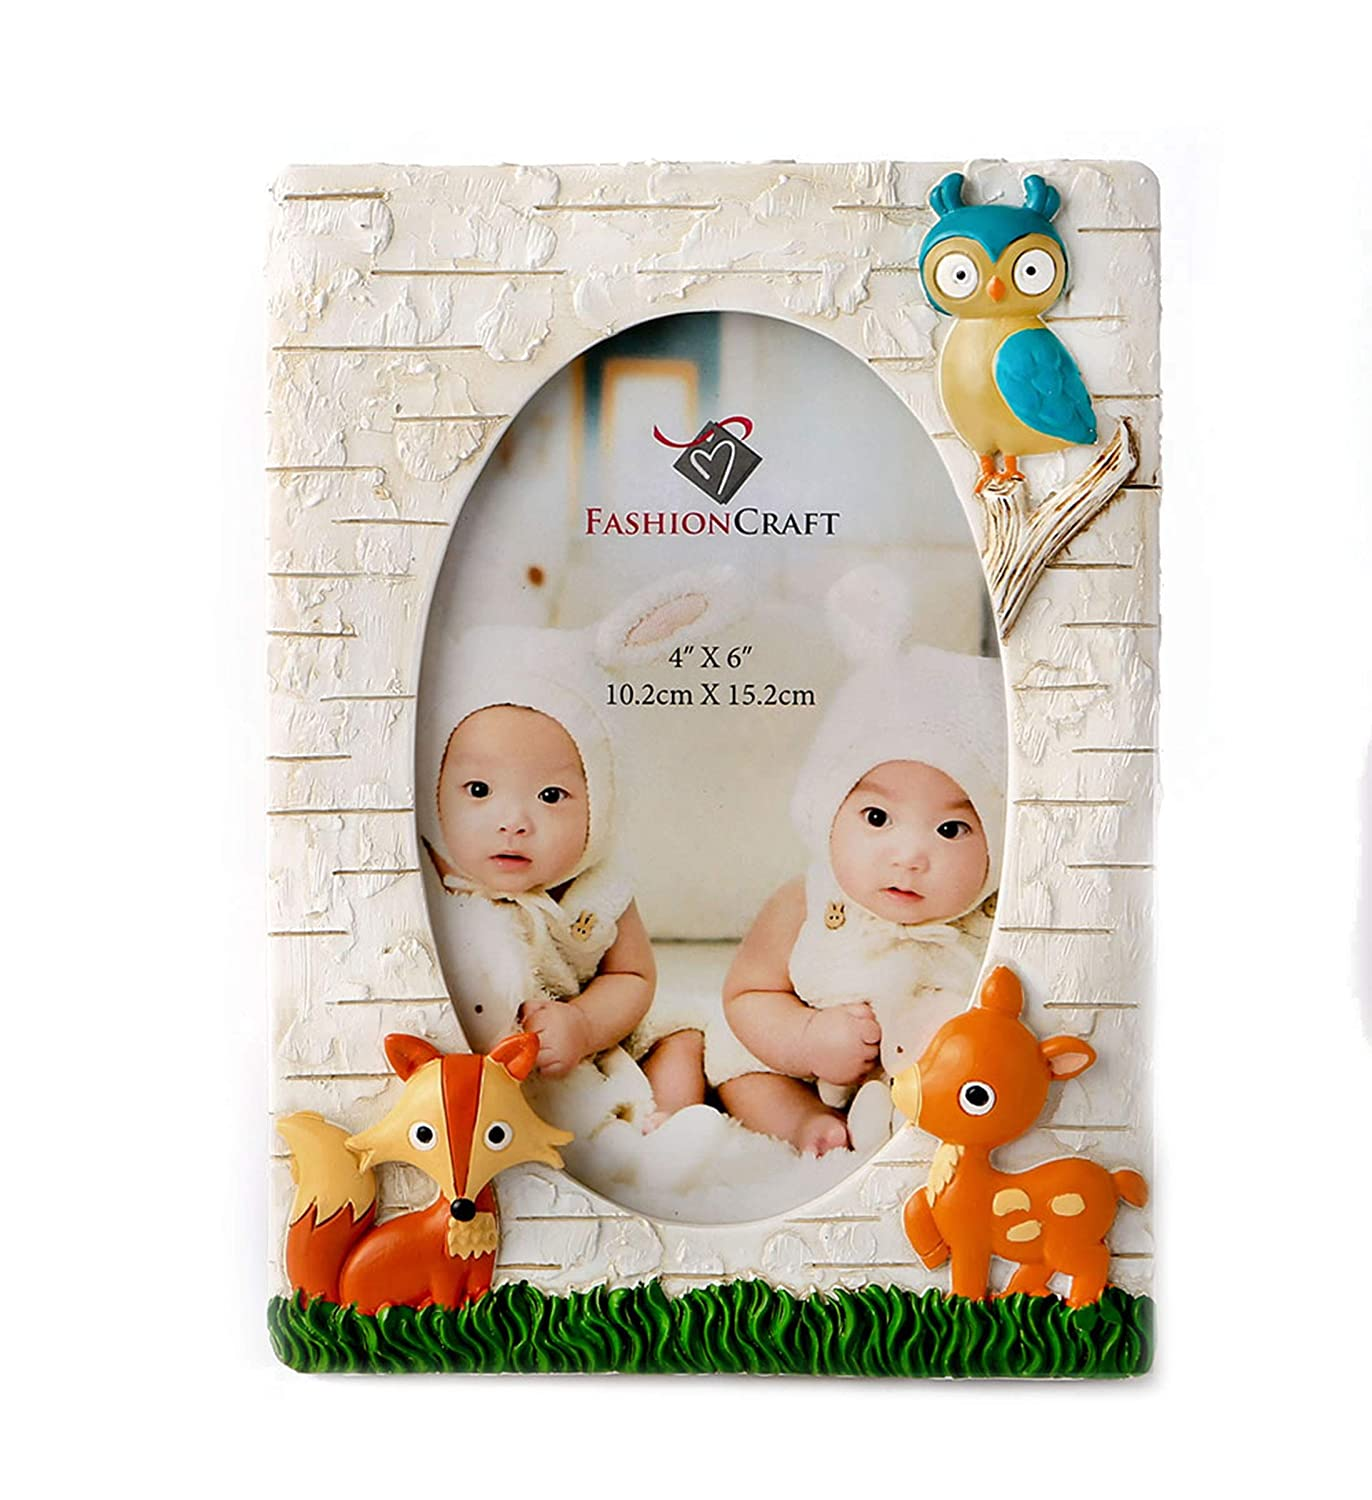 Oval Insert Polyresin Gender Neutral for Boys and Girls Fashioncraft Woodland Animals 4x6 Photo Frame Baby Room D/écor Handpainted